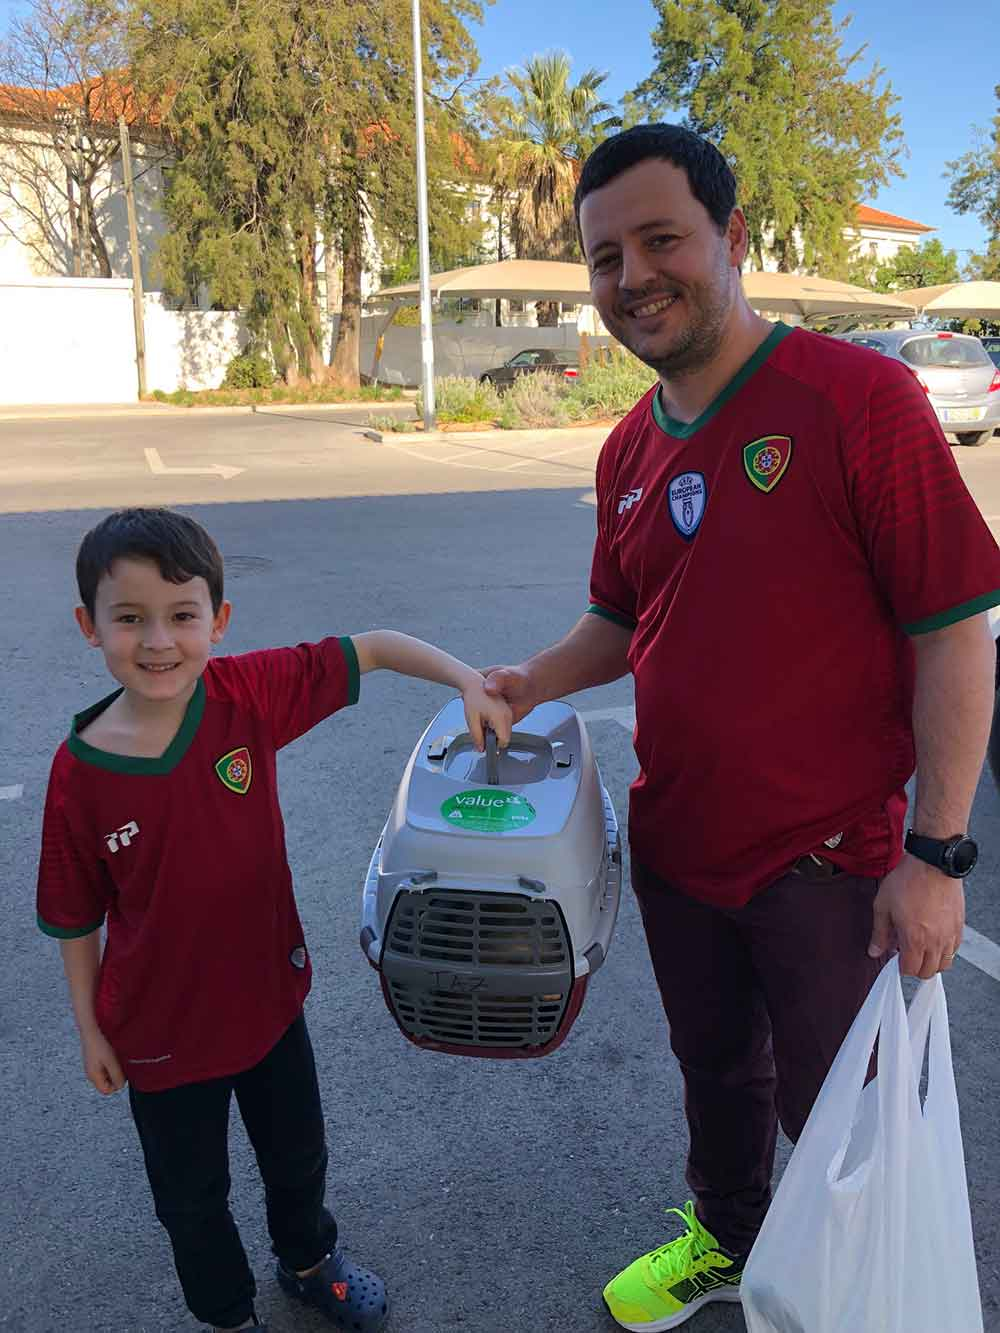 We delivered ferret Taz to delighted duo Anthony and his son at Tavera. Wonder which team they support?!